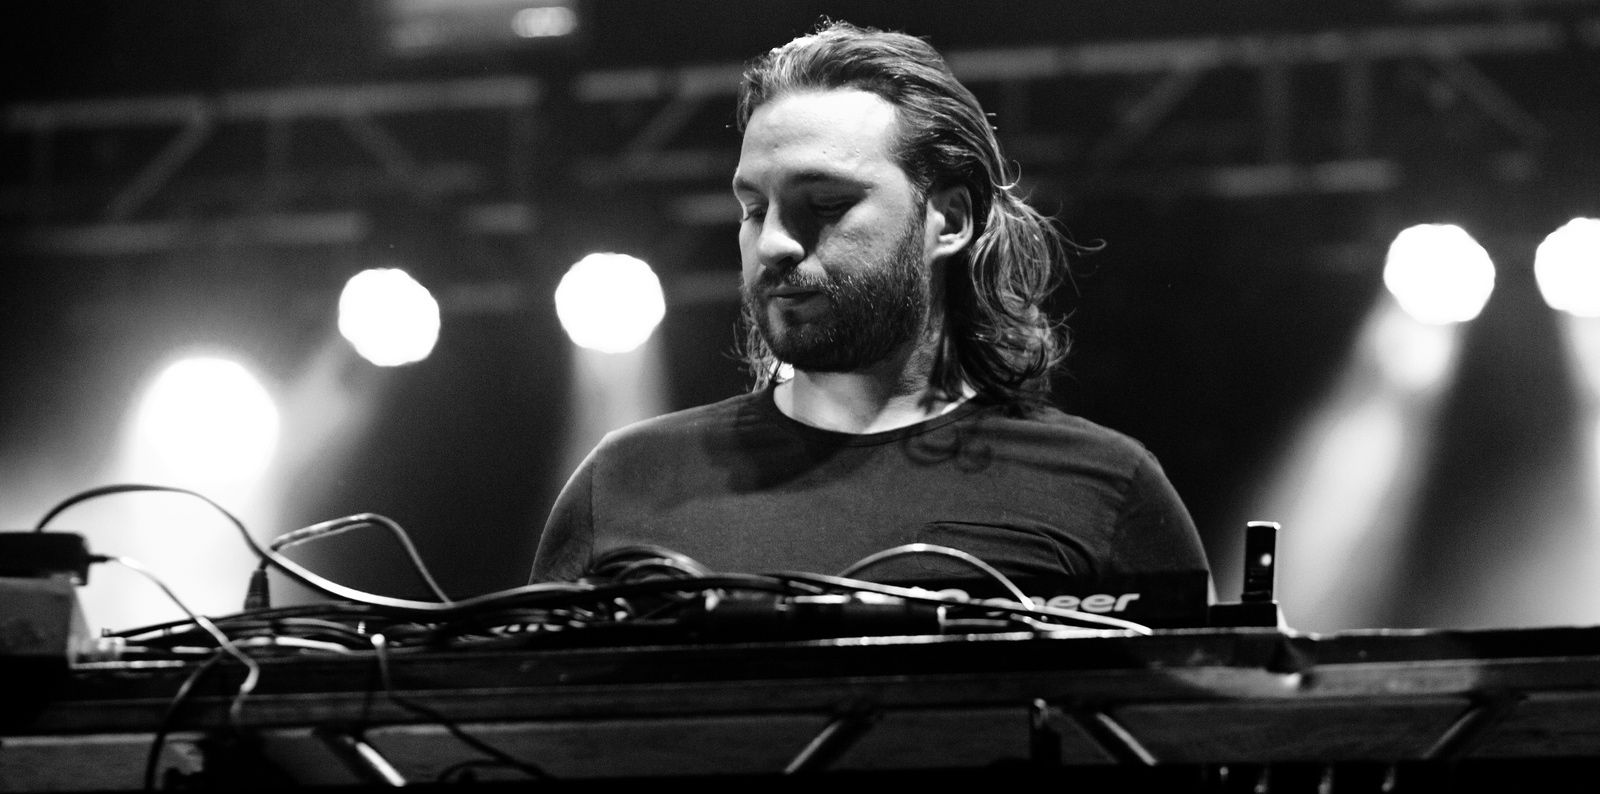 Ten Years of Size: Steve Angello unveils tell all story; from early beginnings and fatherhood, to his new era, new album, and new label